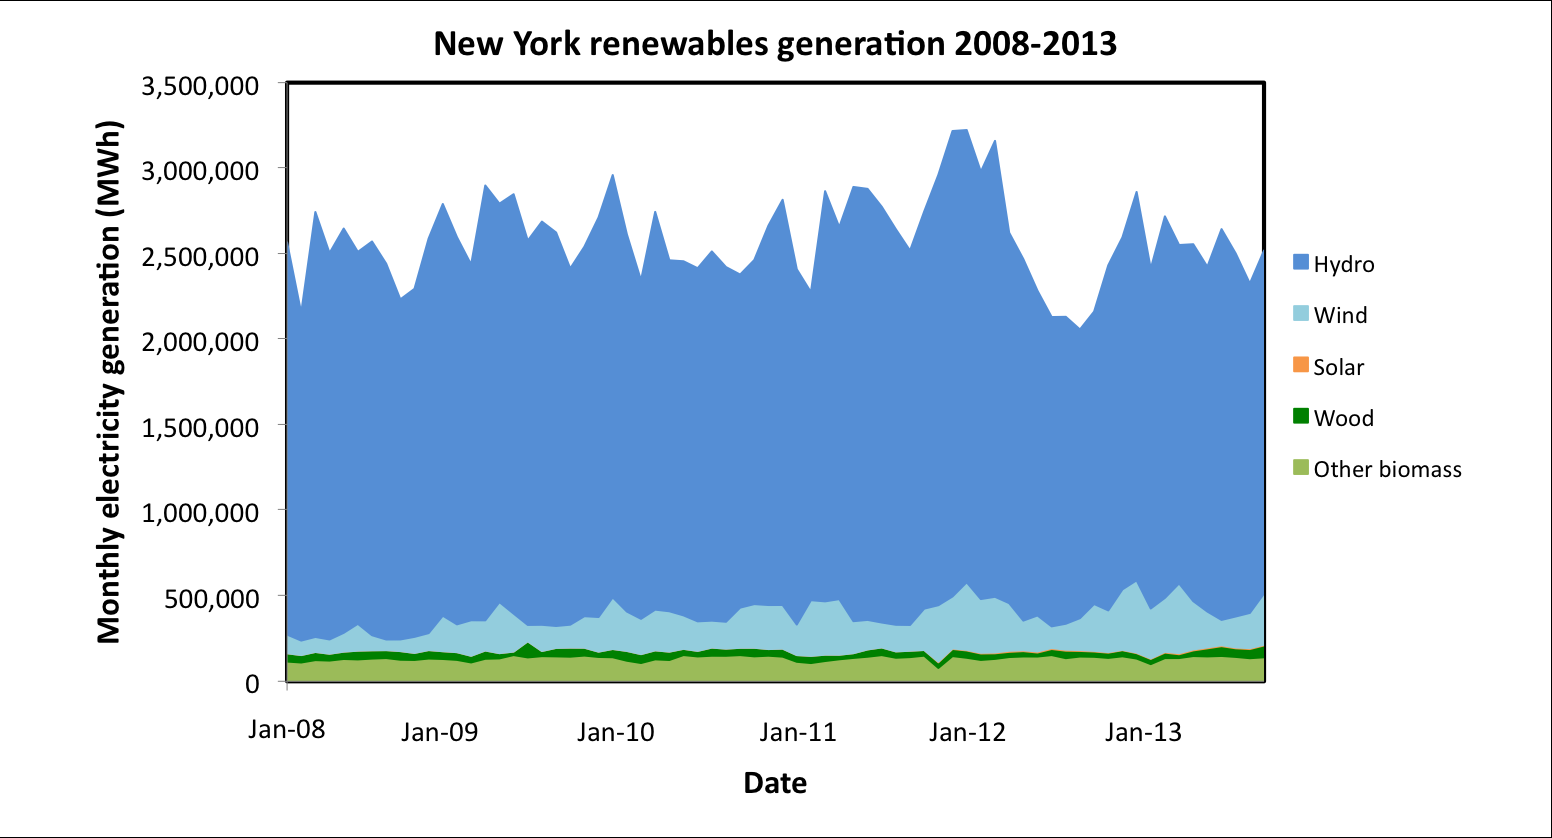 Figure 8: Electricity generation in New York by source, 2008-2013. 6 Texas Figure 9: Renewable electricity generation in New York by source, 2008-2013.